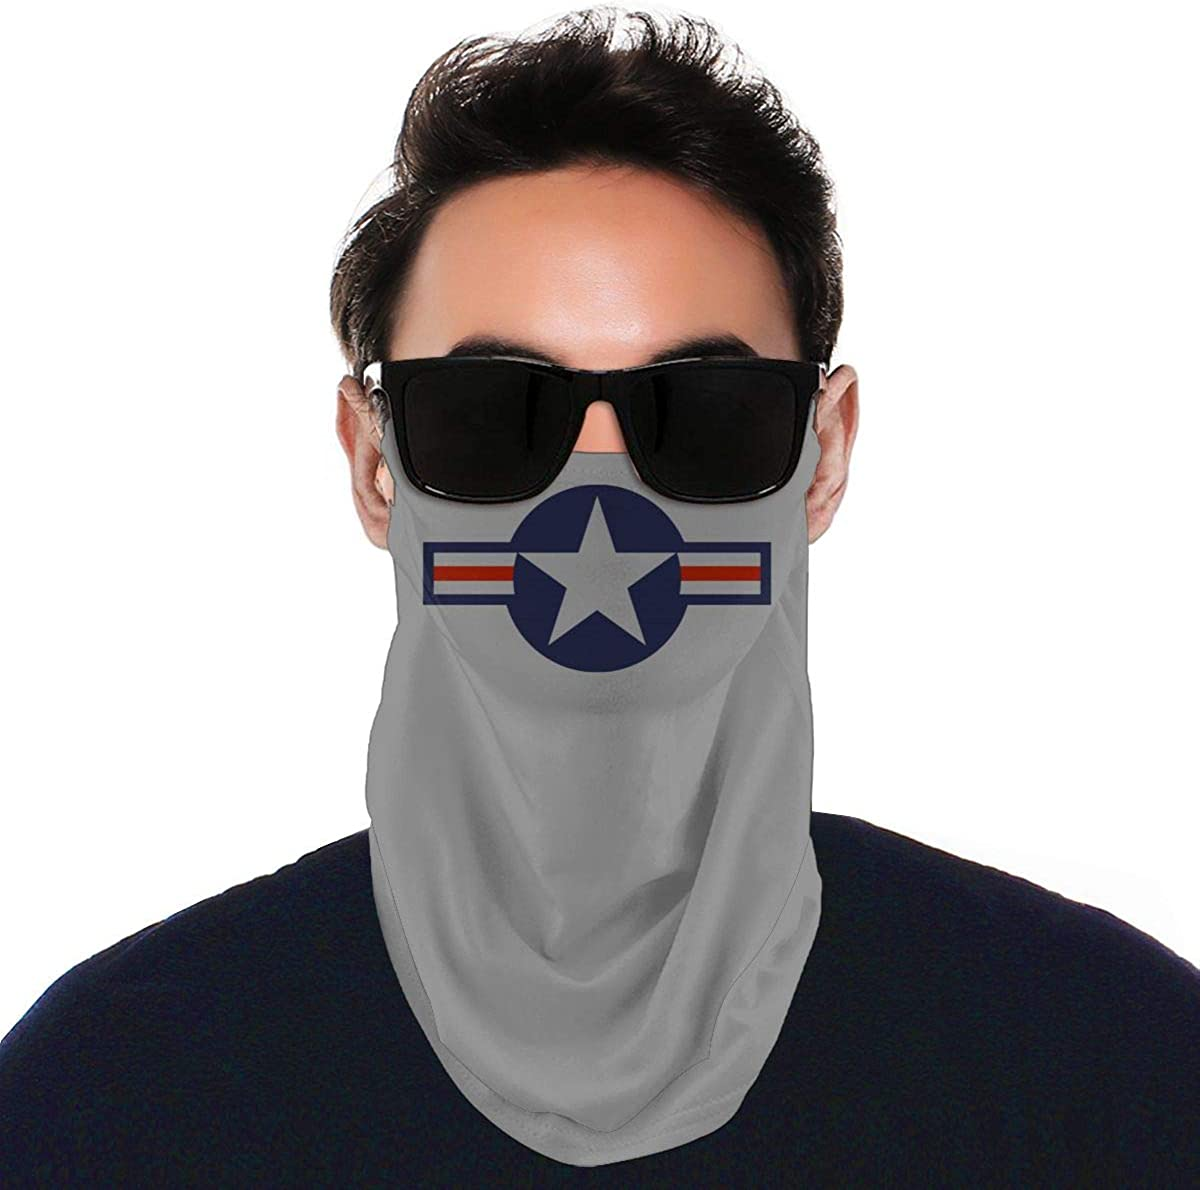 USA Air Force Ear-Hung Variety Windproof Gaiter Face Towel Face Headscarf